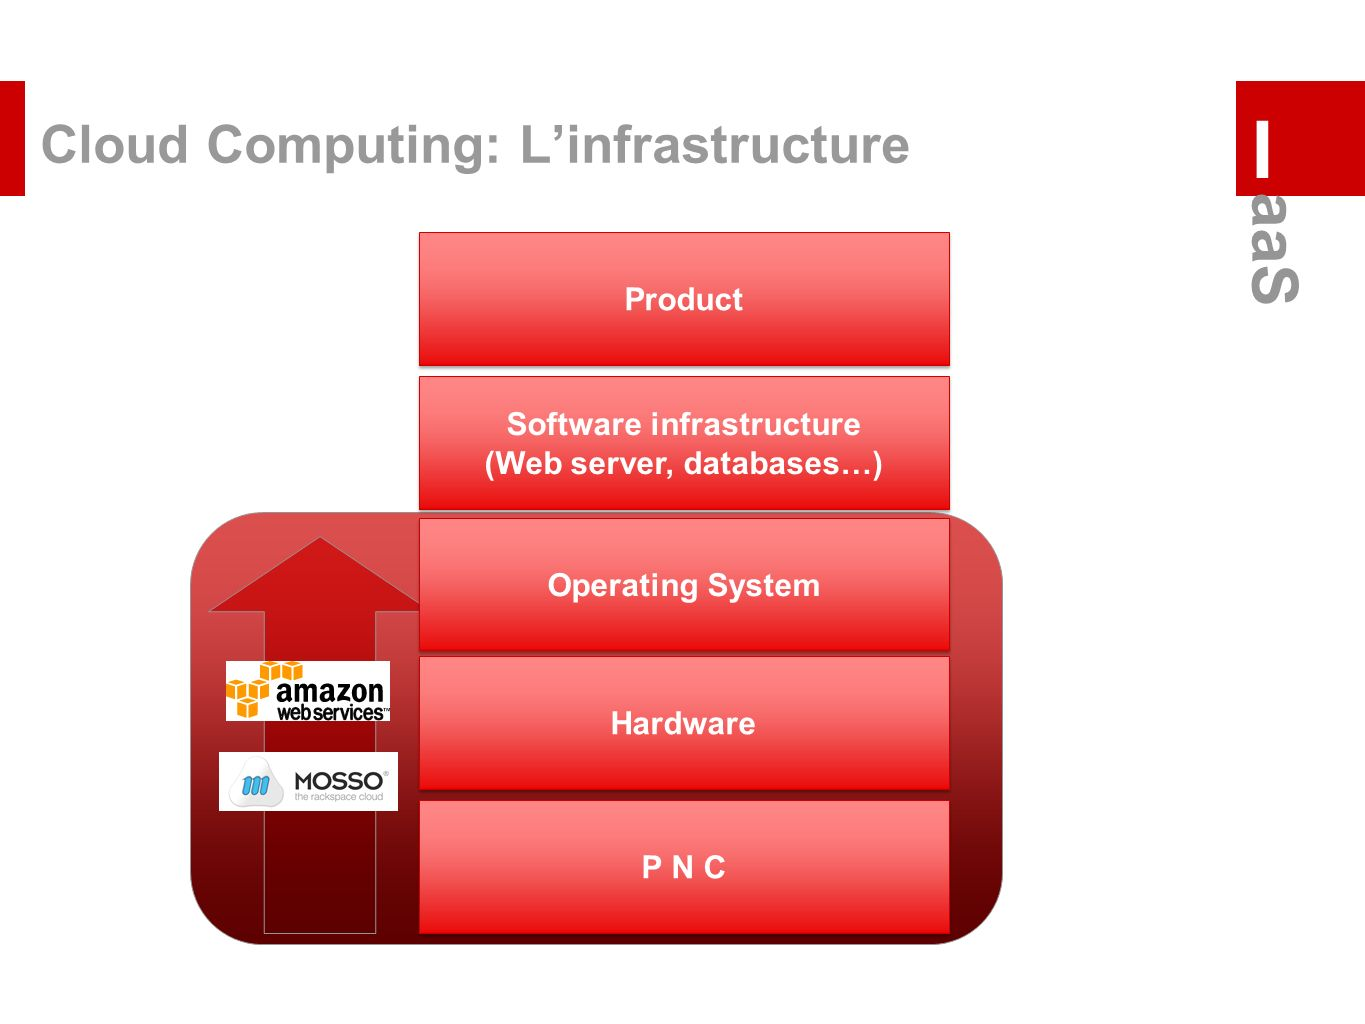 Cloud Computing: L'infrastructure